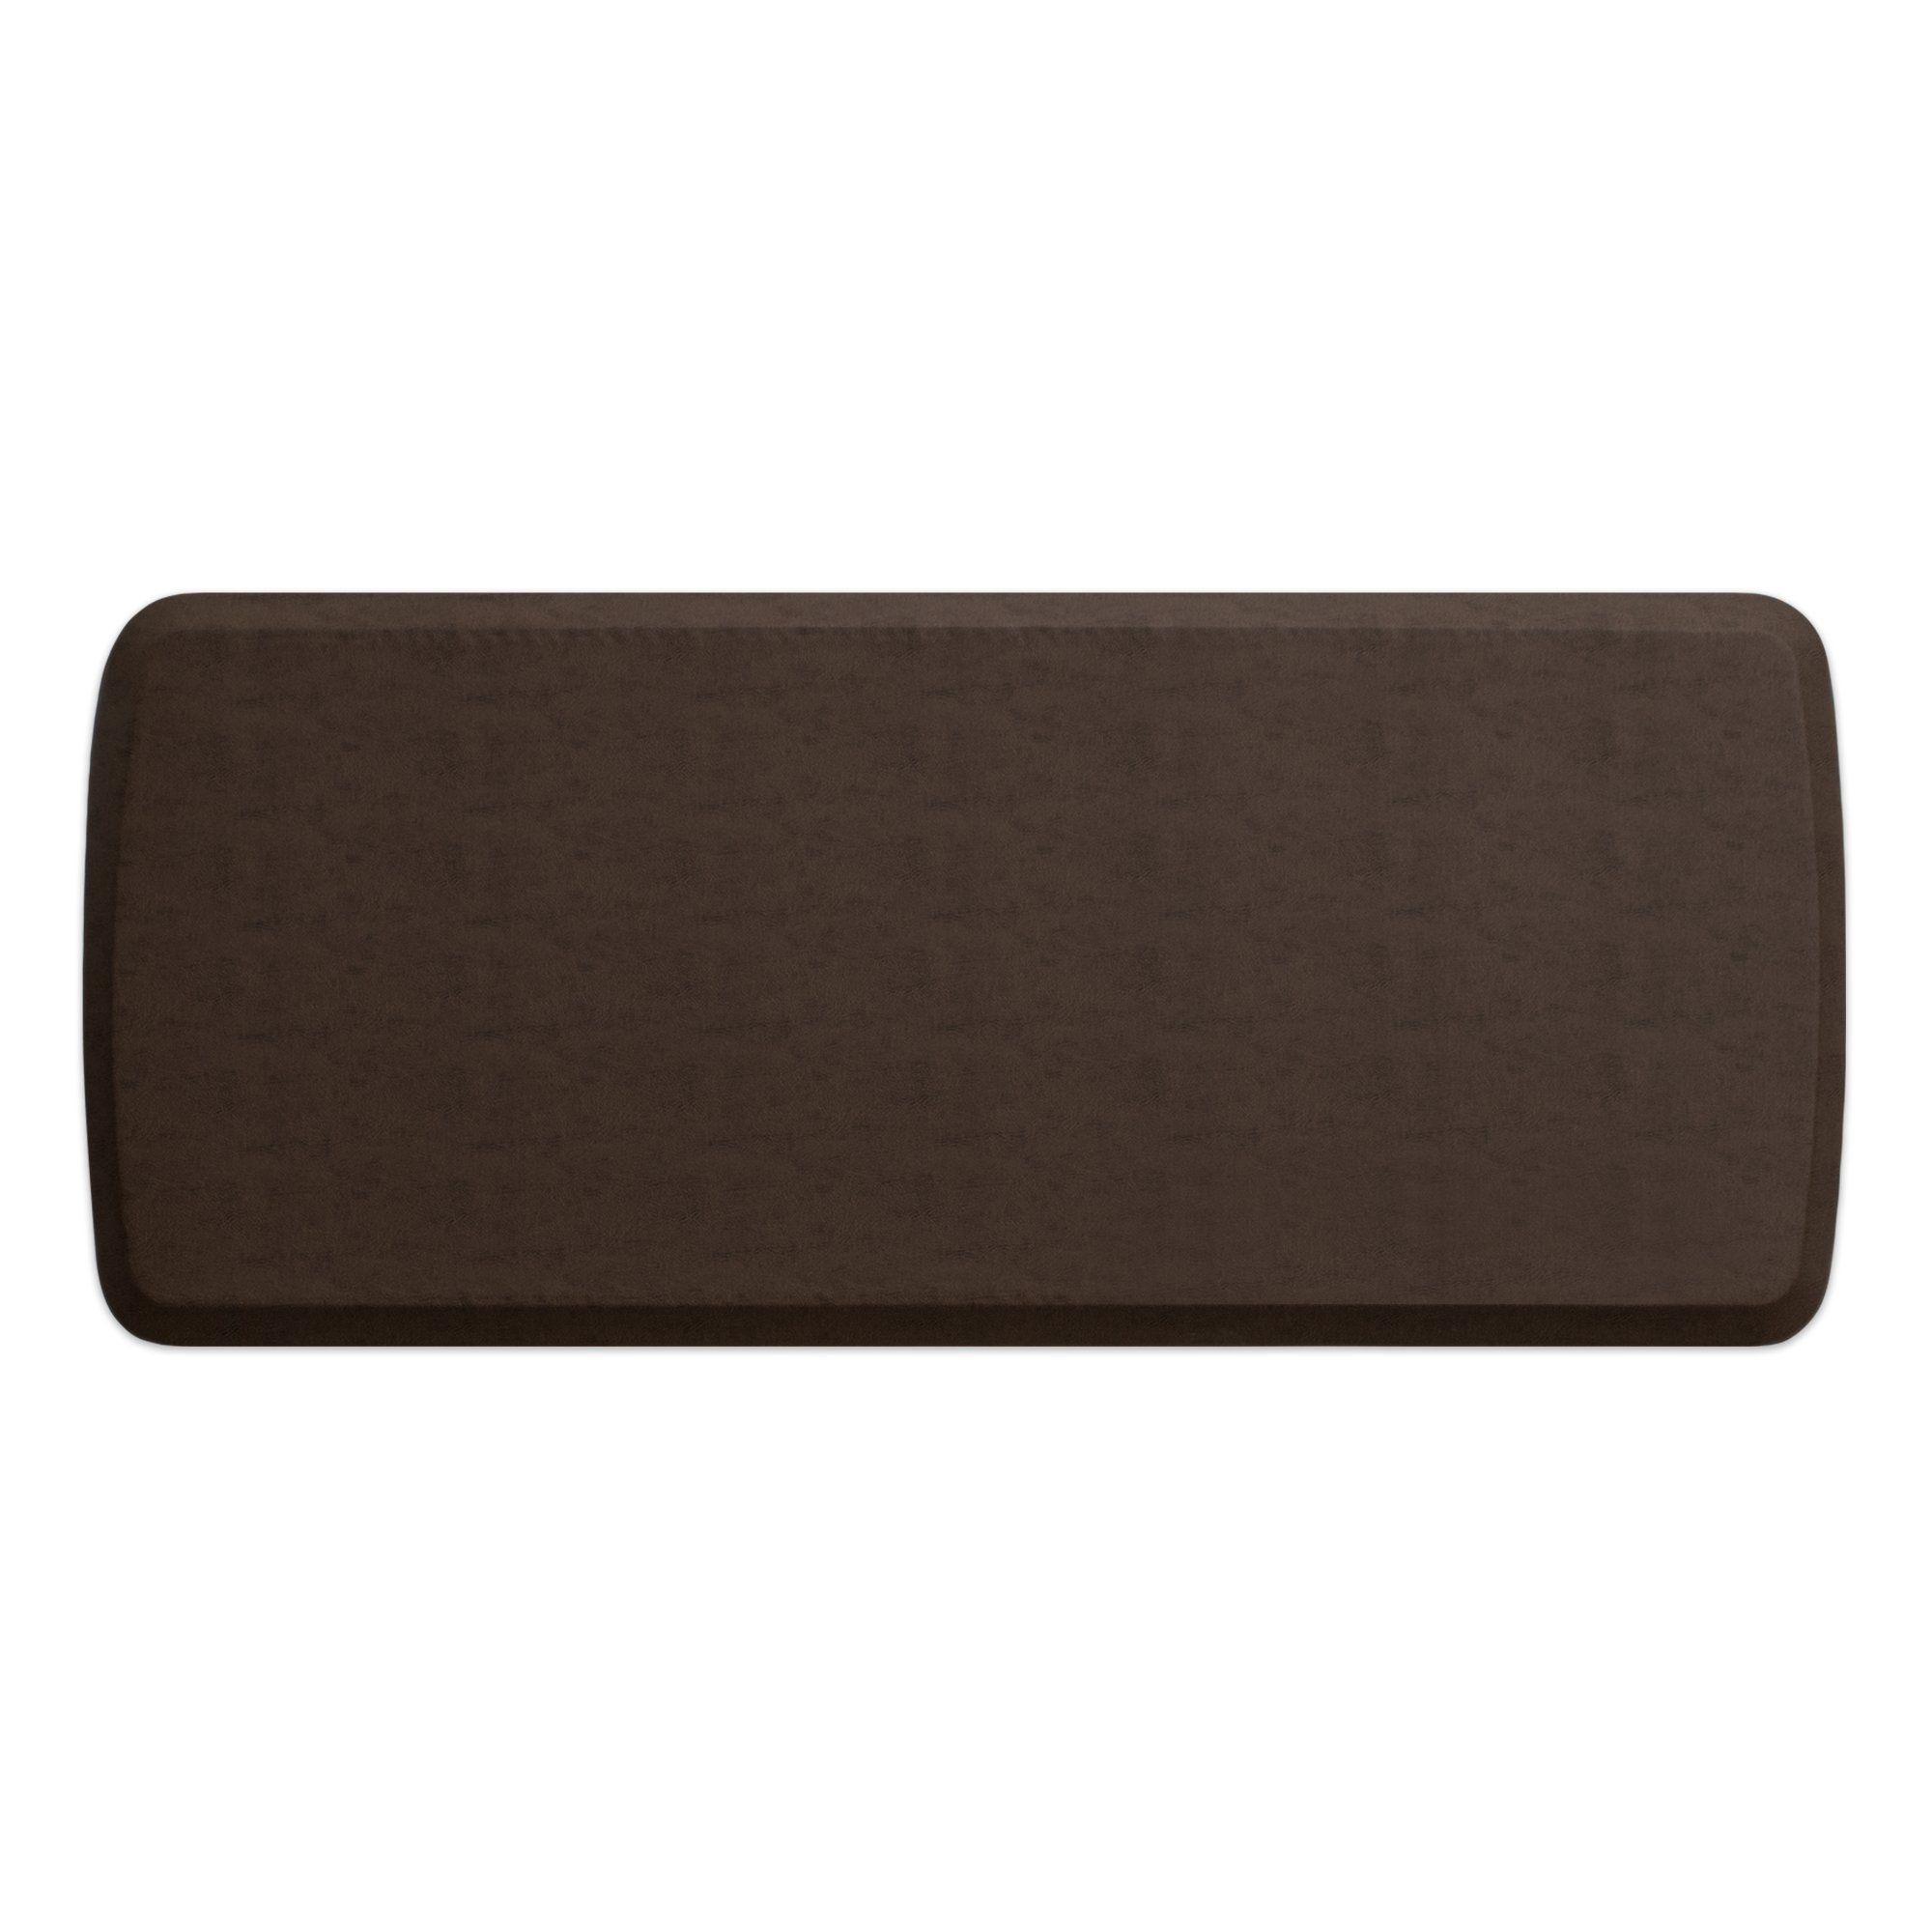 """GelPro Elite Premier Anti-Fatigue Kitchen Comfort Floor Mat, 20x48"""", Vintage Leather Rustic Brown Stain Resistant Surface with Therapeutic Gel and Energy-return Foam for Health and Wellness by GelPro (Image #1)"""